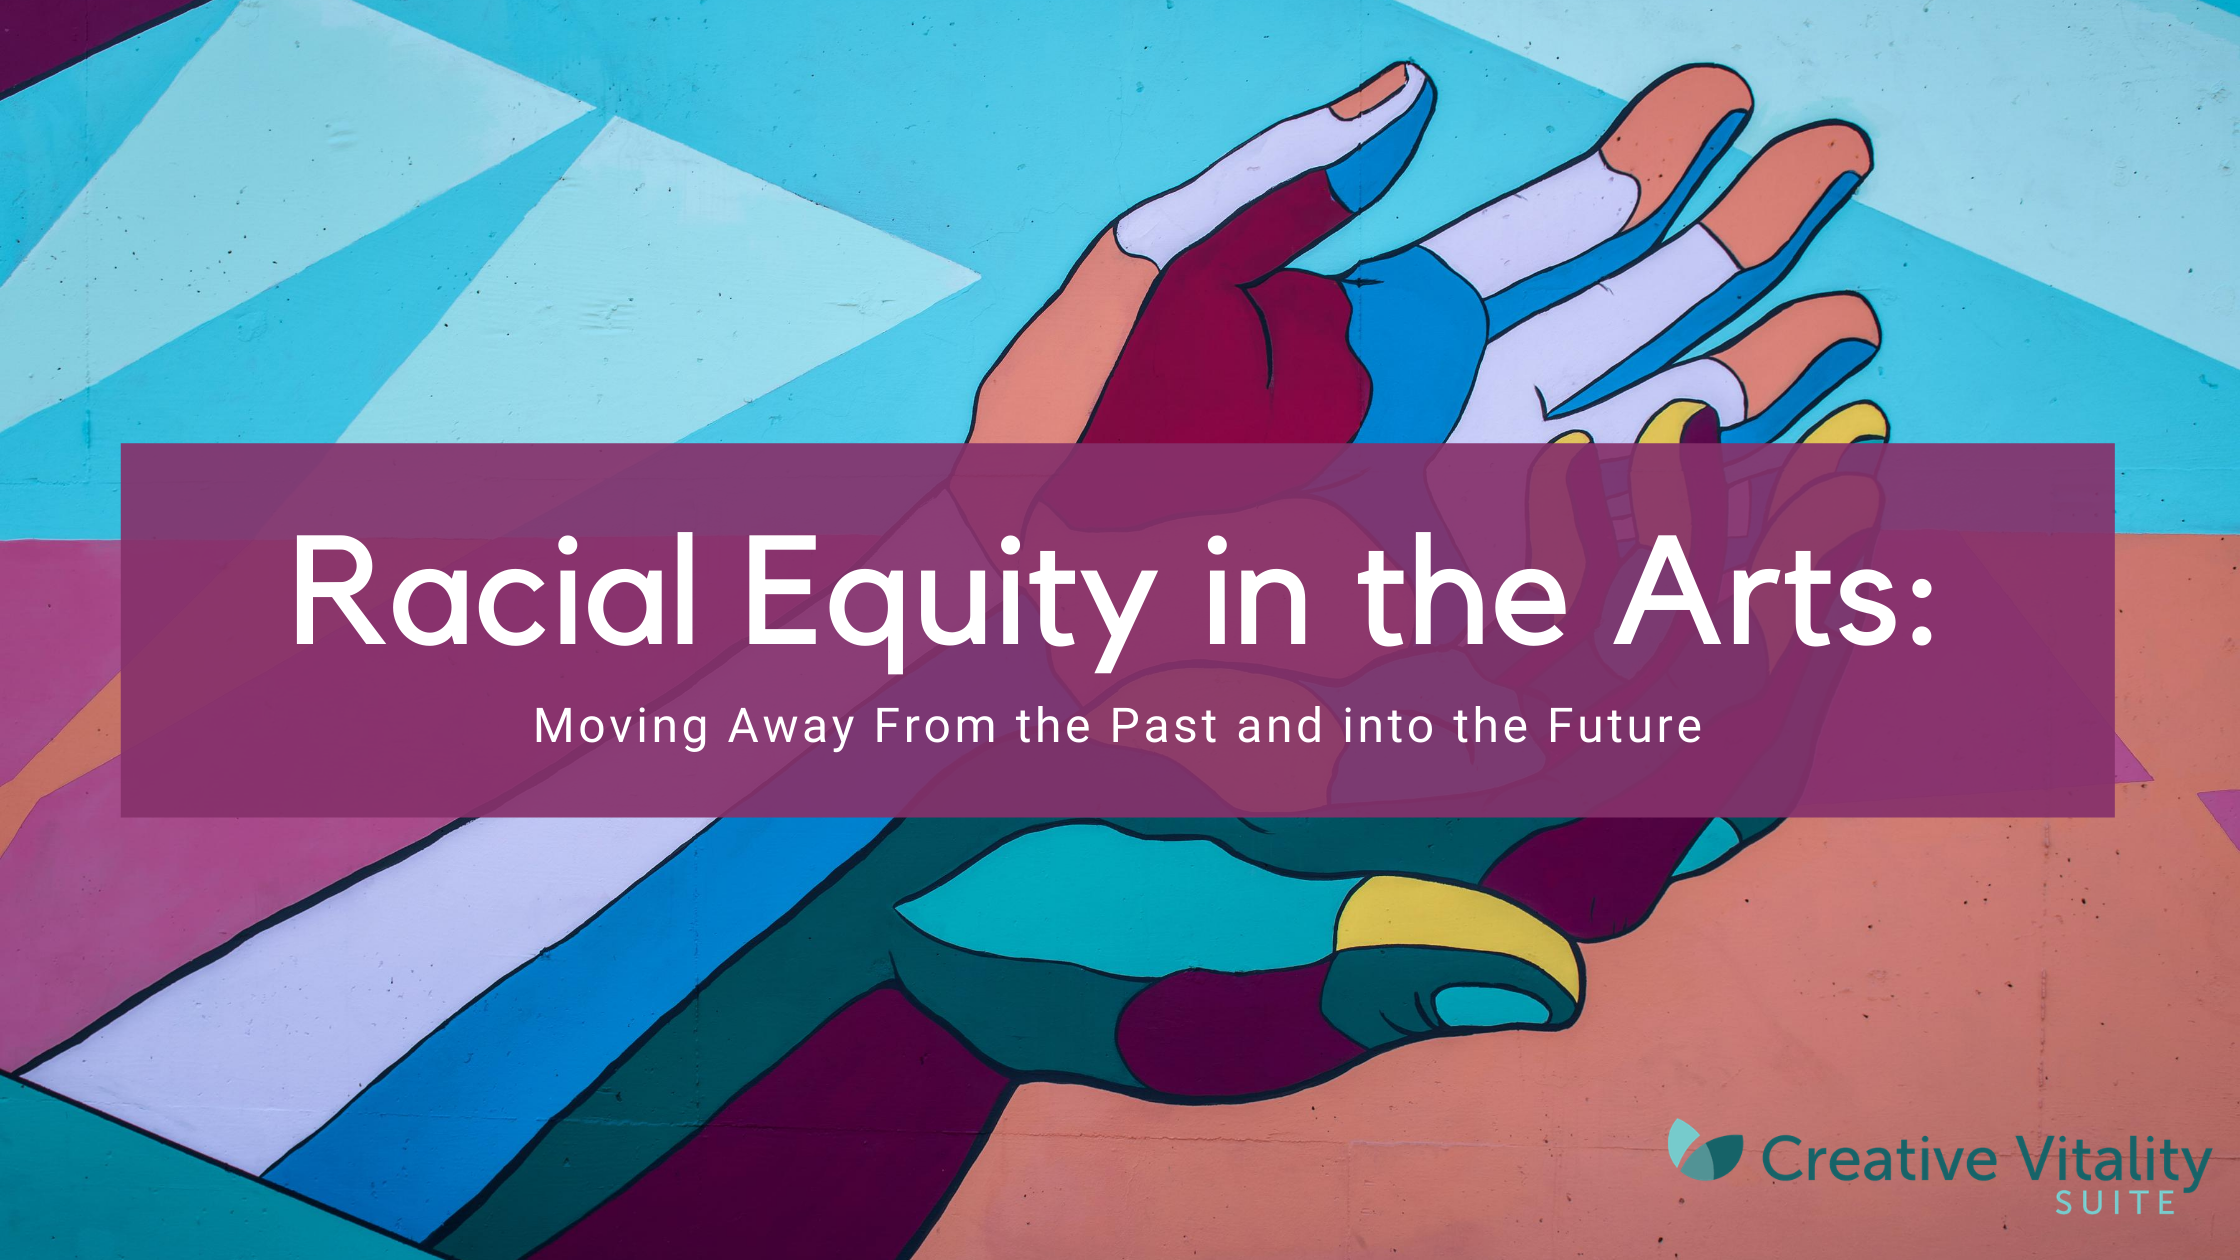 Racial Equity in the Arts featured image